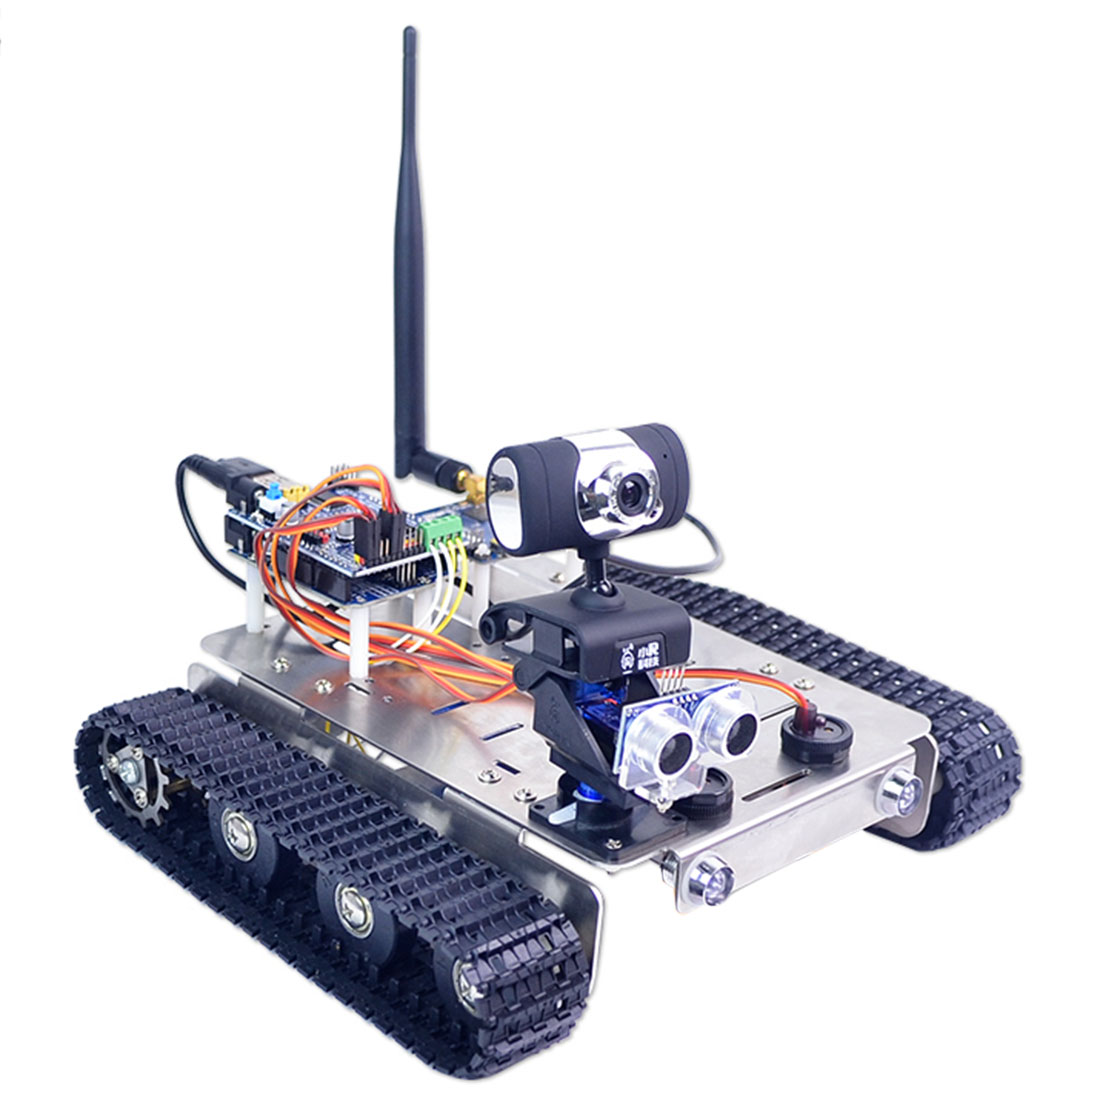 DIY Programmable Robot Wifi + Bluetooth Track Tank Steam Educational Car With Graphic XR BLOCK Linux For Arduino UNO R3